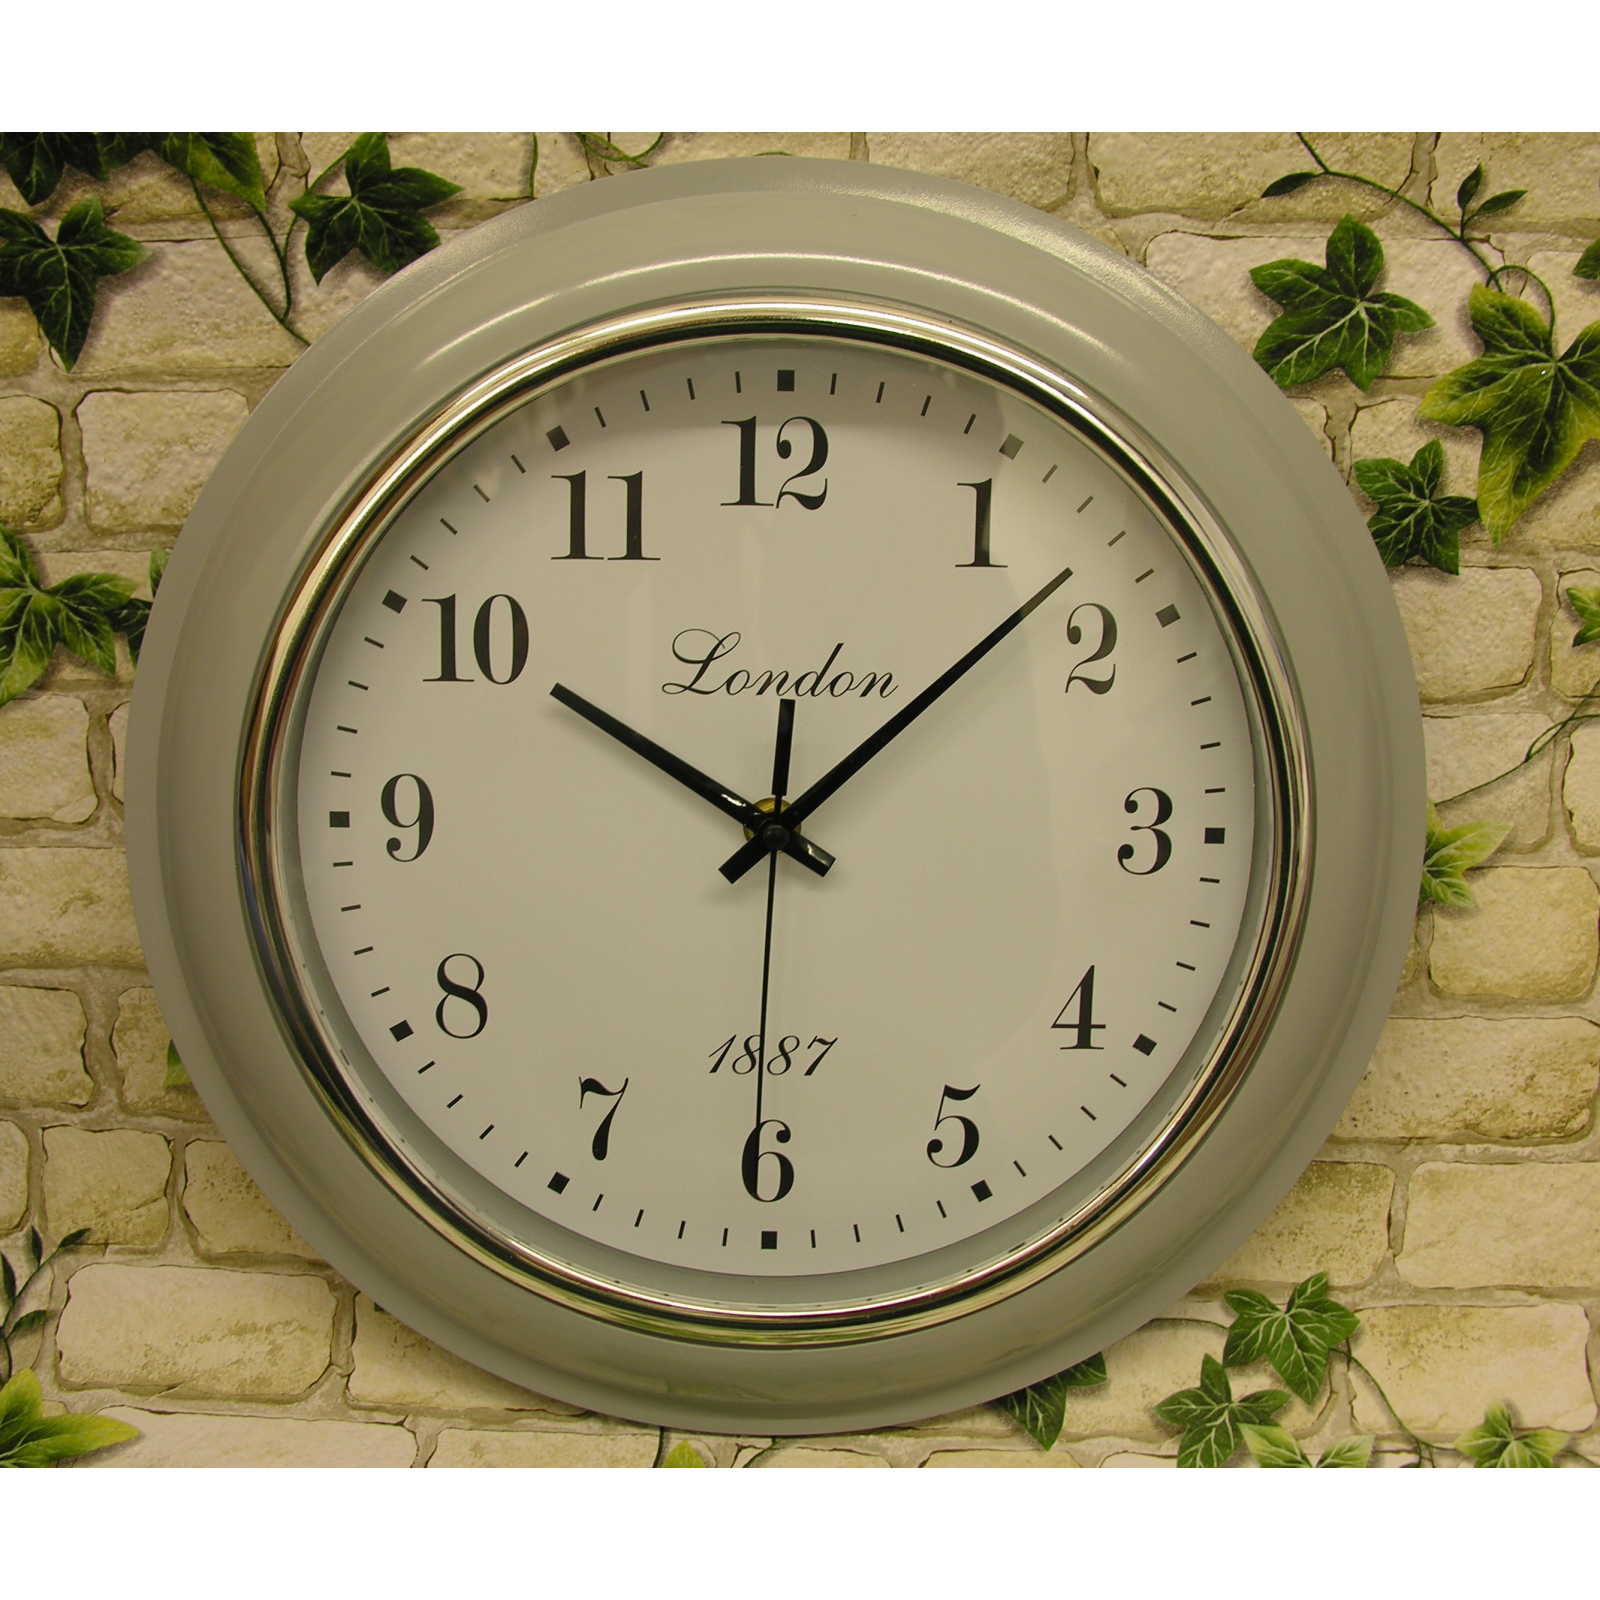 horloge murale londres gris 32cm horloge de gare montre de bureau design r tro ebay. Black Bedroom Furniture Sets. Home Design Ideas